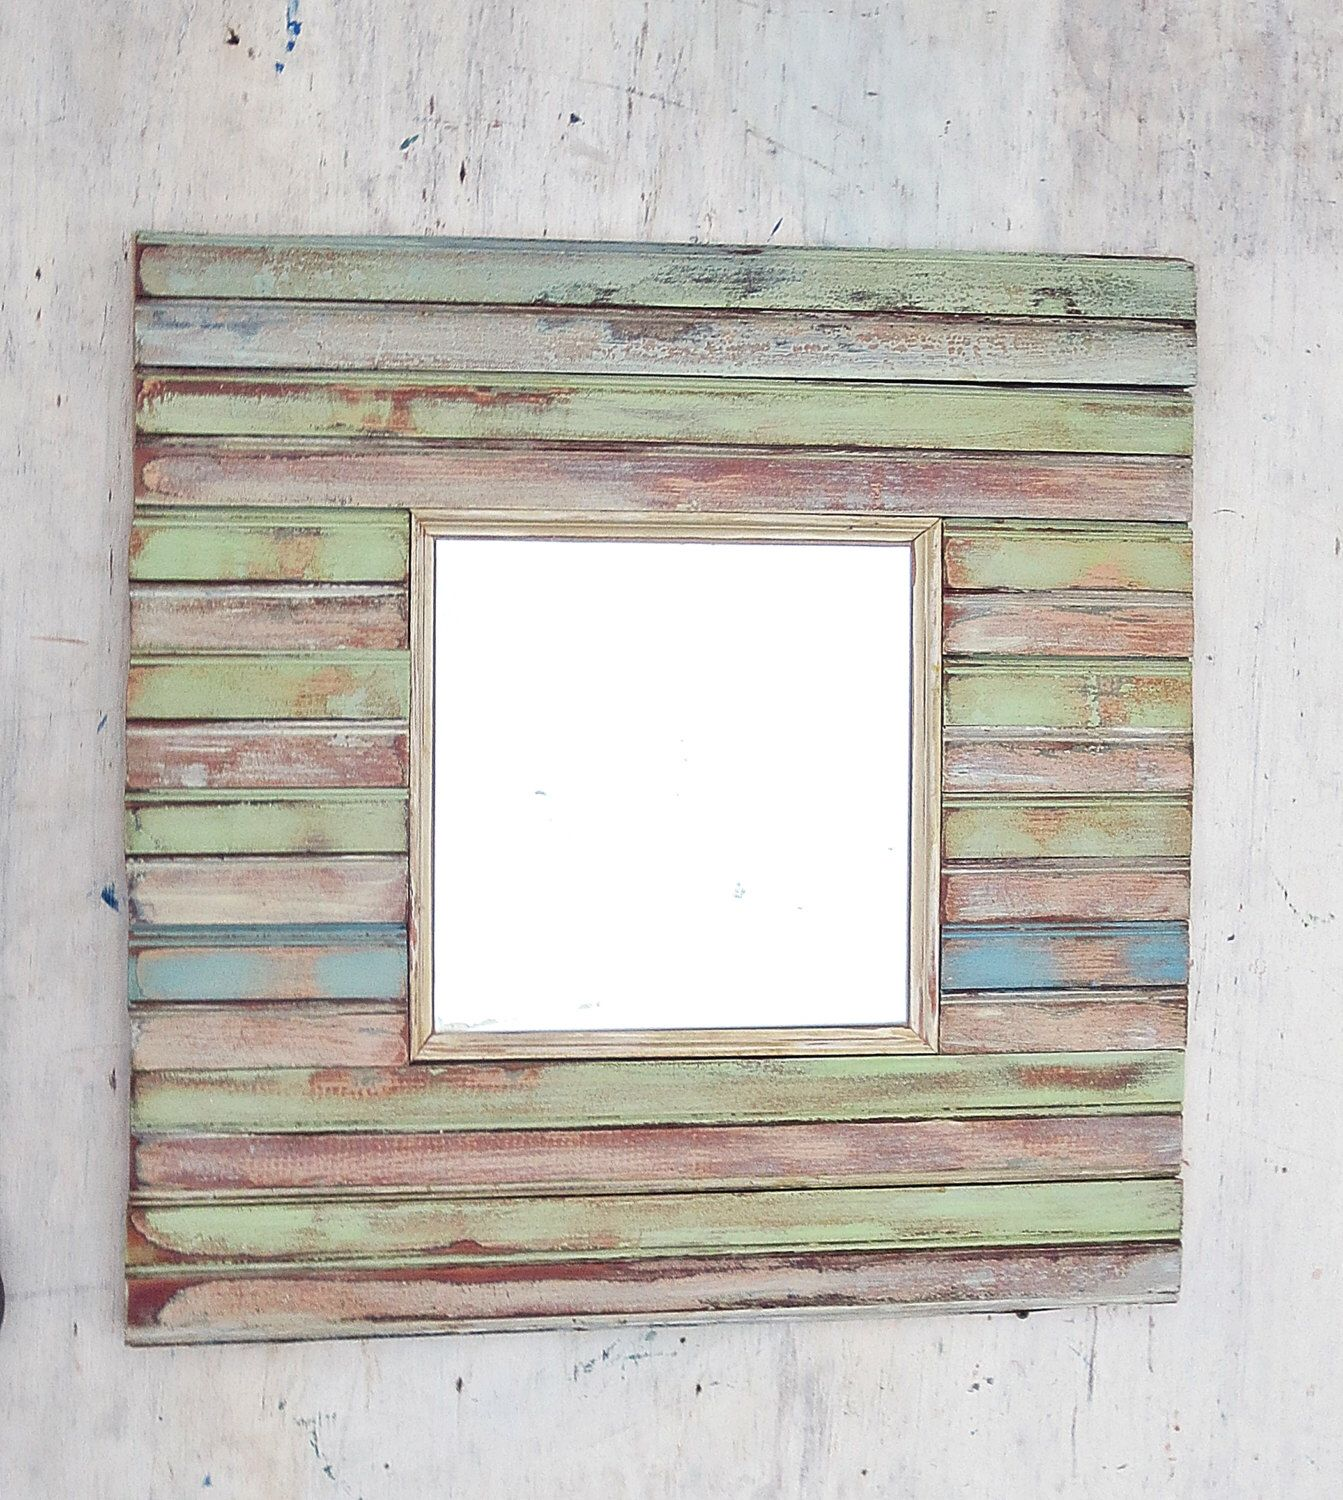 Reclaimed Wood Mirror, Rustic Mirror, Decorative Mirror, Rustic Wall Decor,